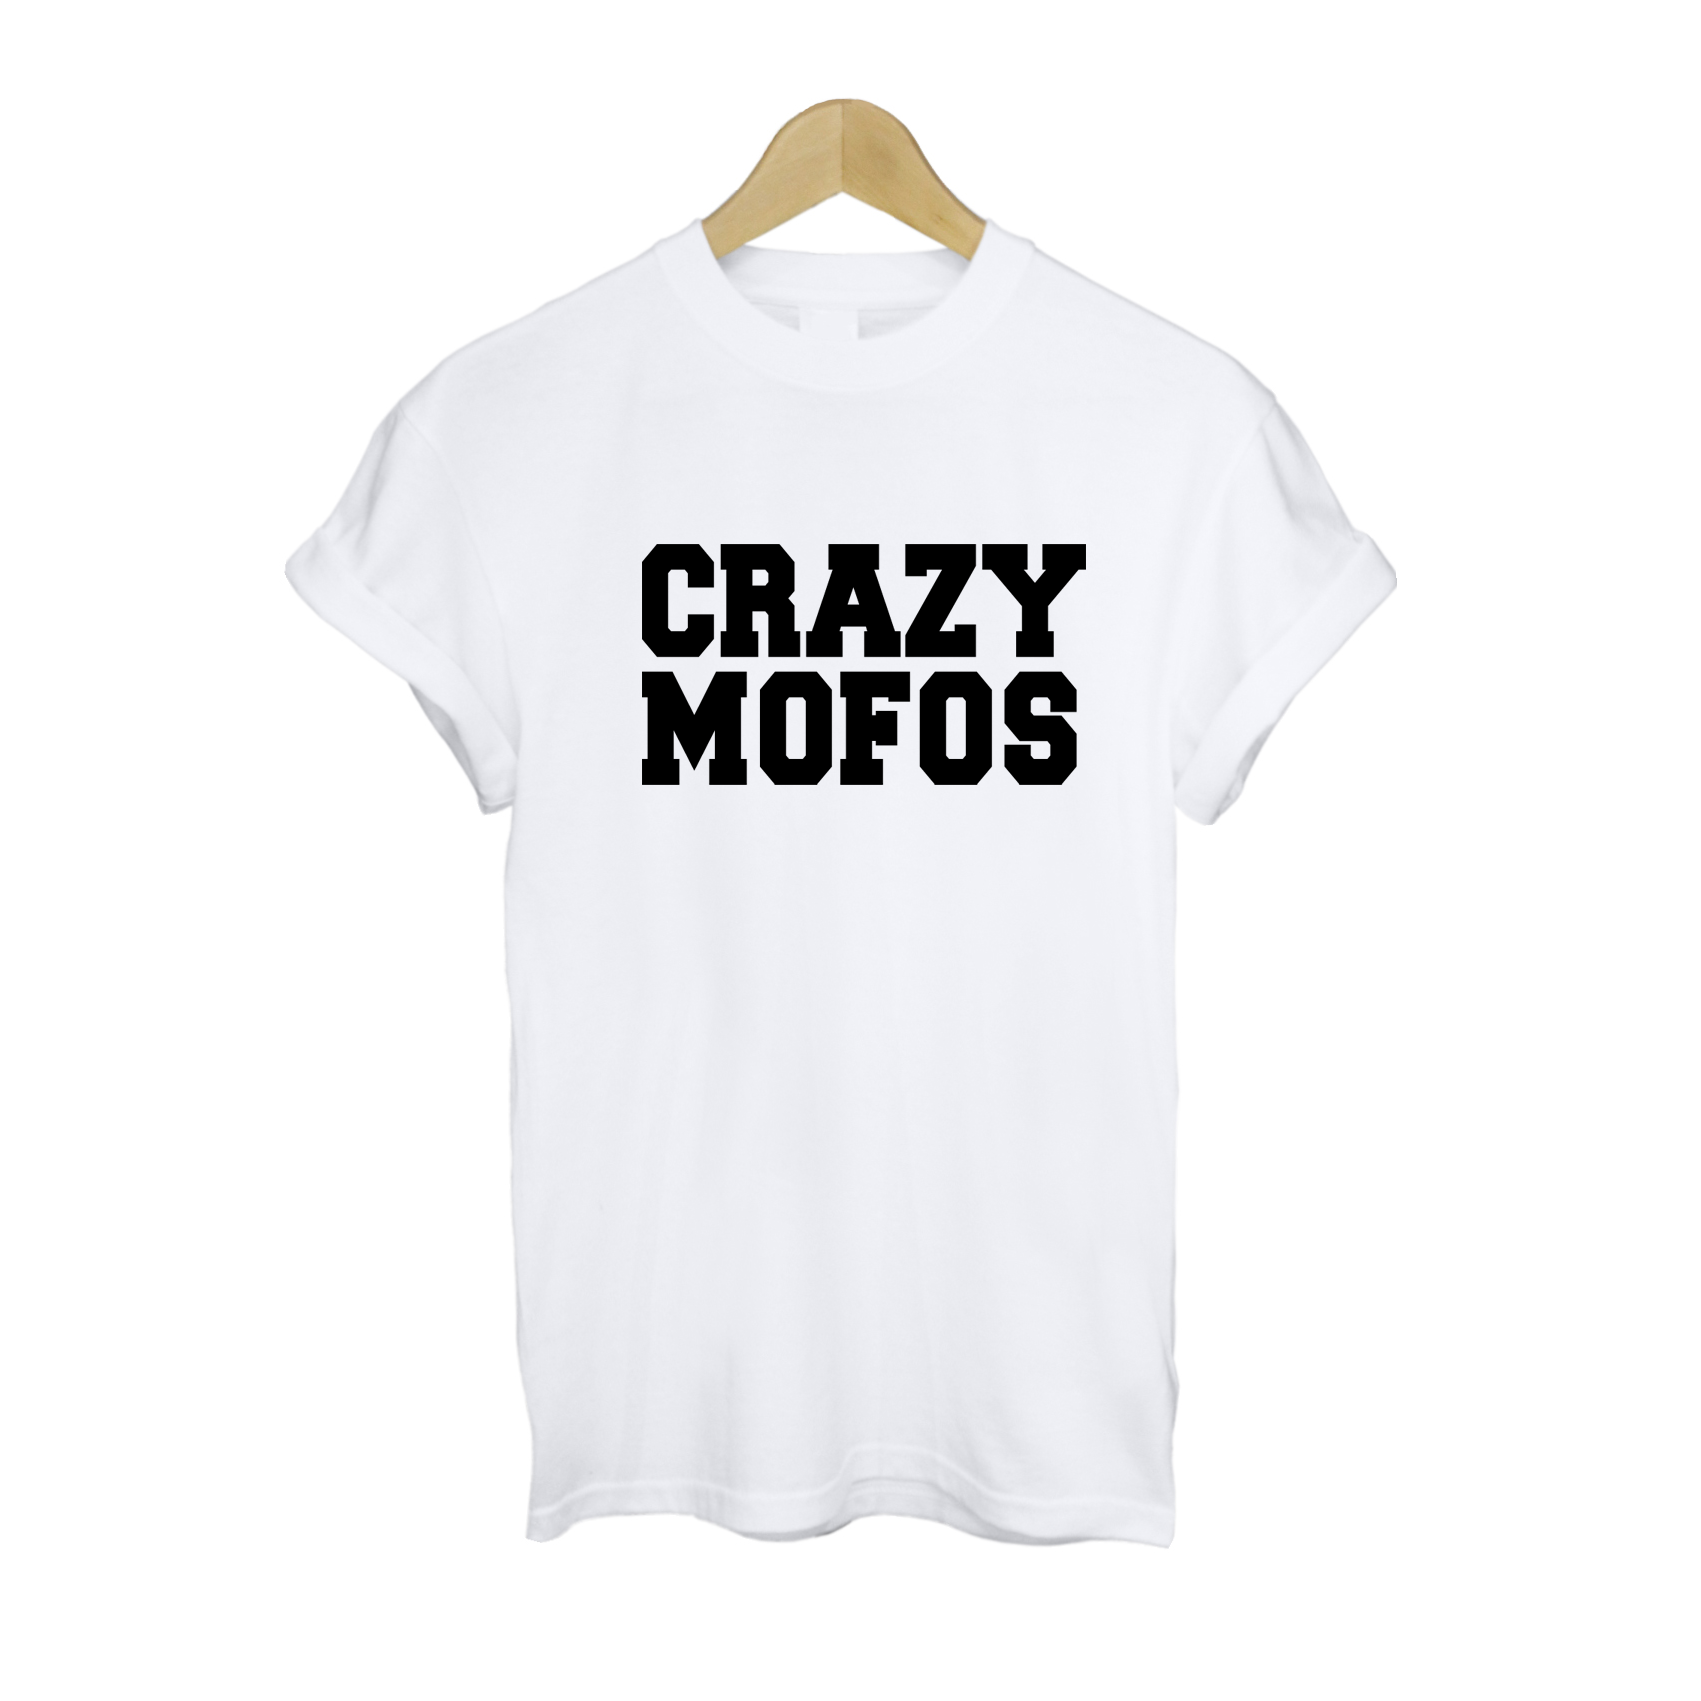 Crazy Mofos T Shirt £10   Free UK Delivery   10% OFF